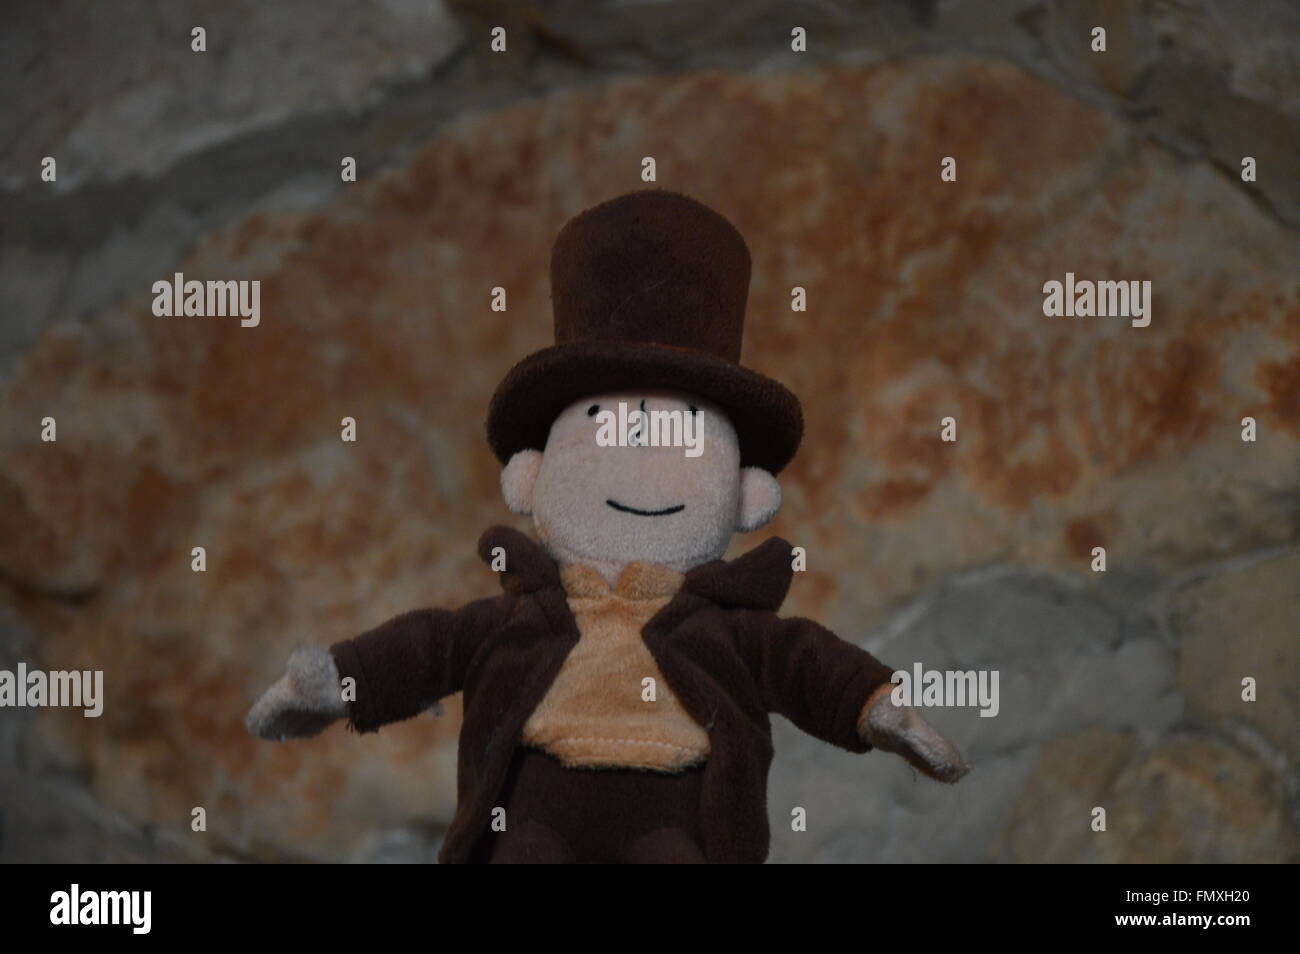 Layton the Detective and Teacher - Stock Image